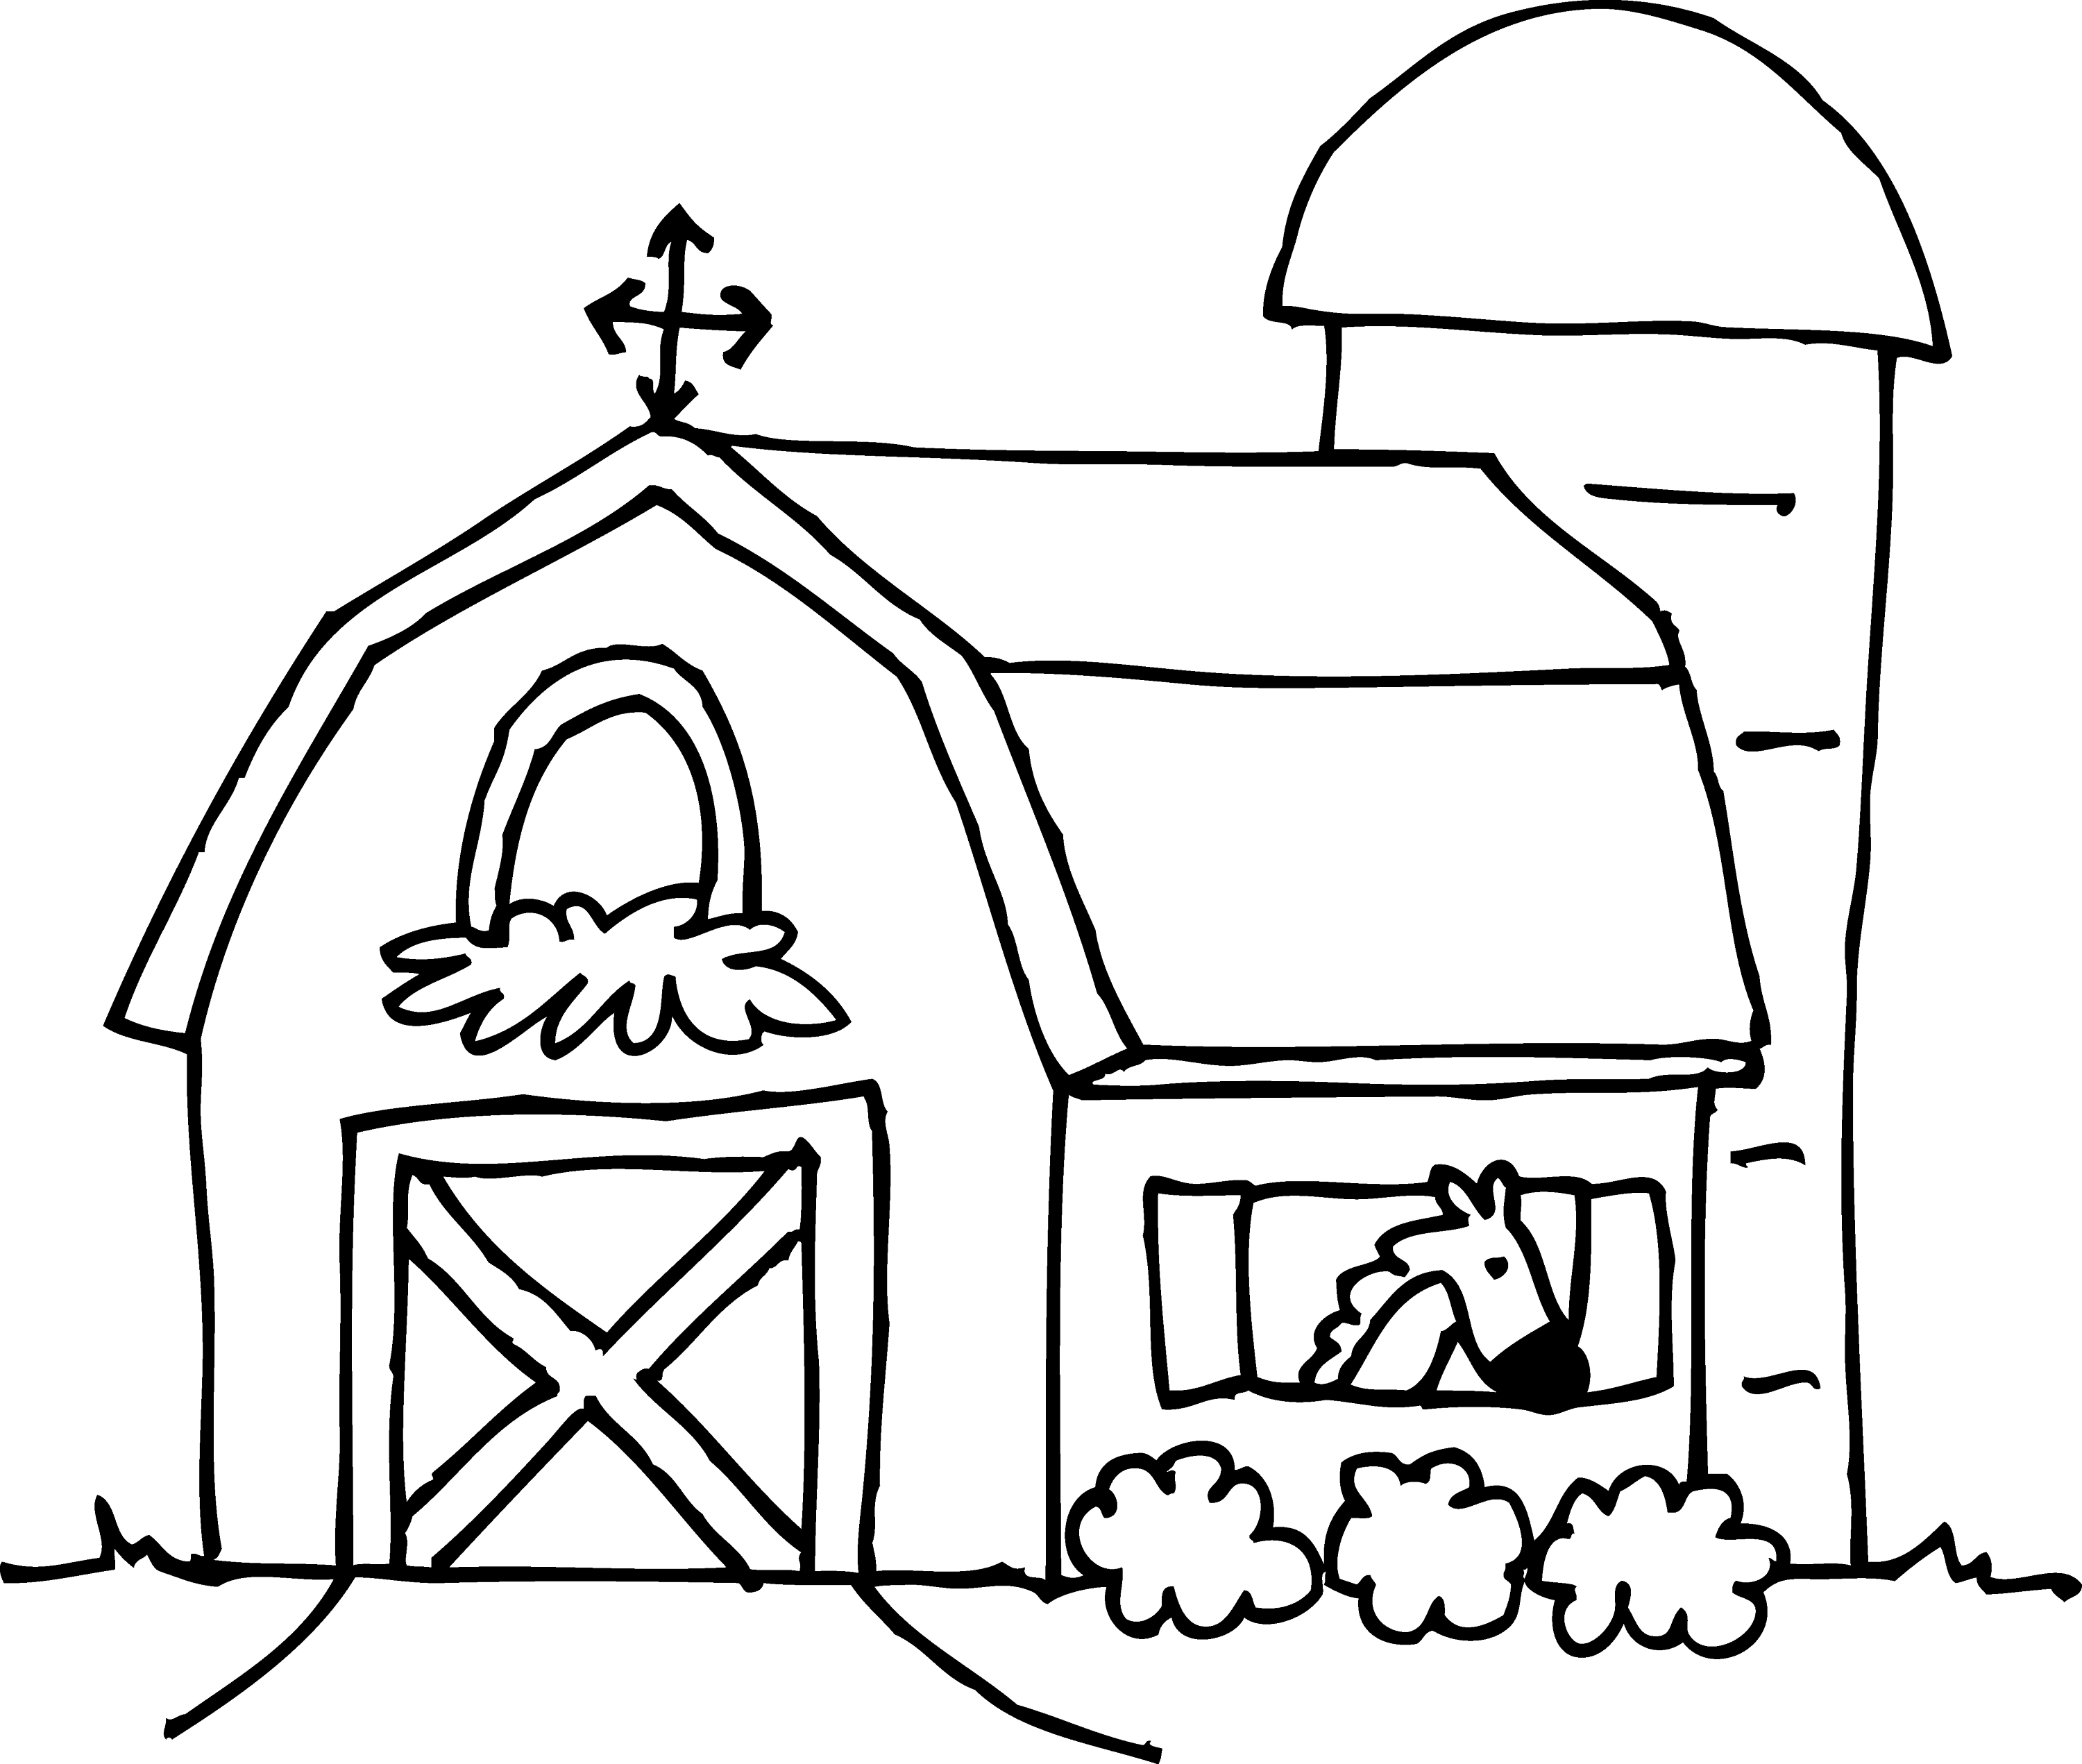 Barnyard Clipart Black And White Cute Barn Coloring Page Free Clip Art